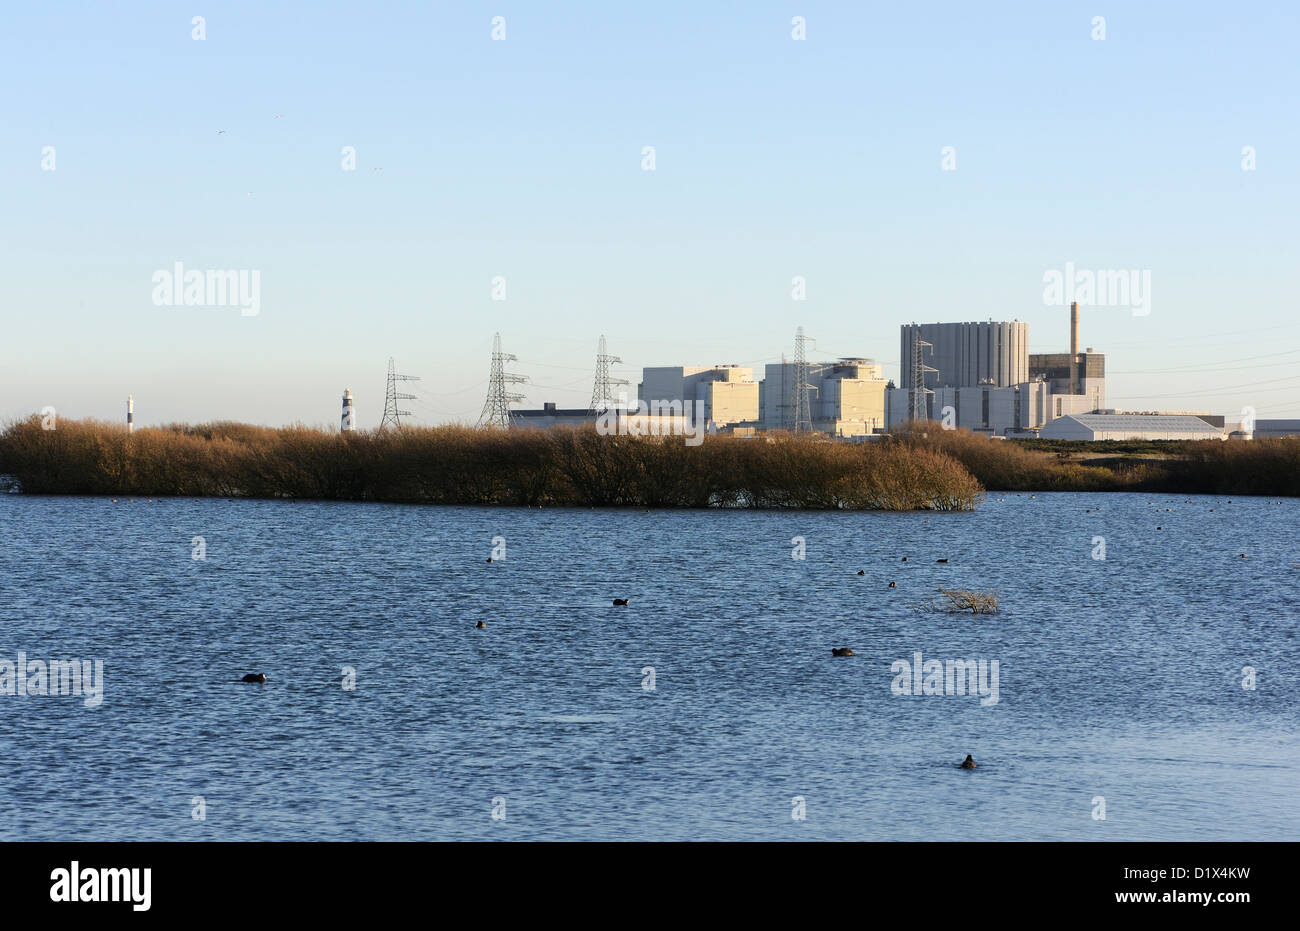 Dungeness nuclear power station. From the RSPB Dungeness Reserve. Coots can be seen on the lake in the foreground - Stock Image